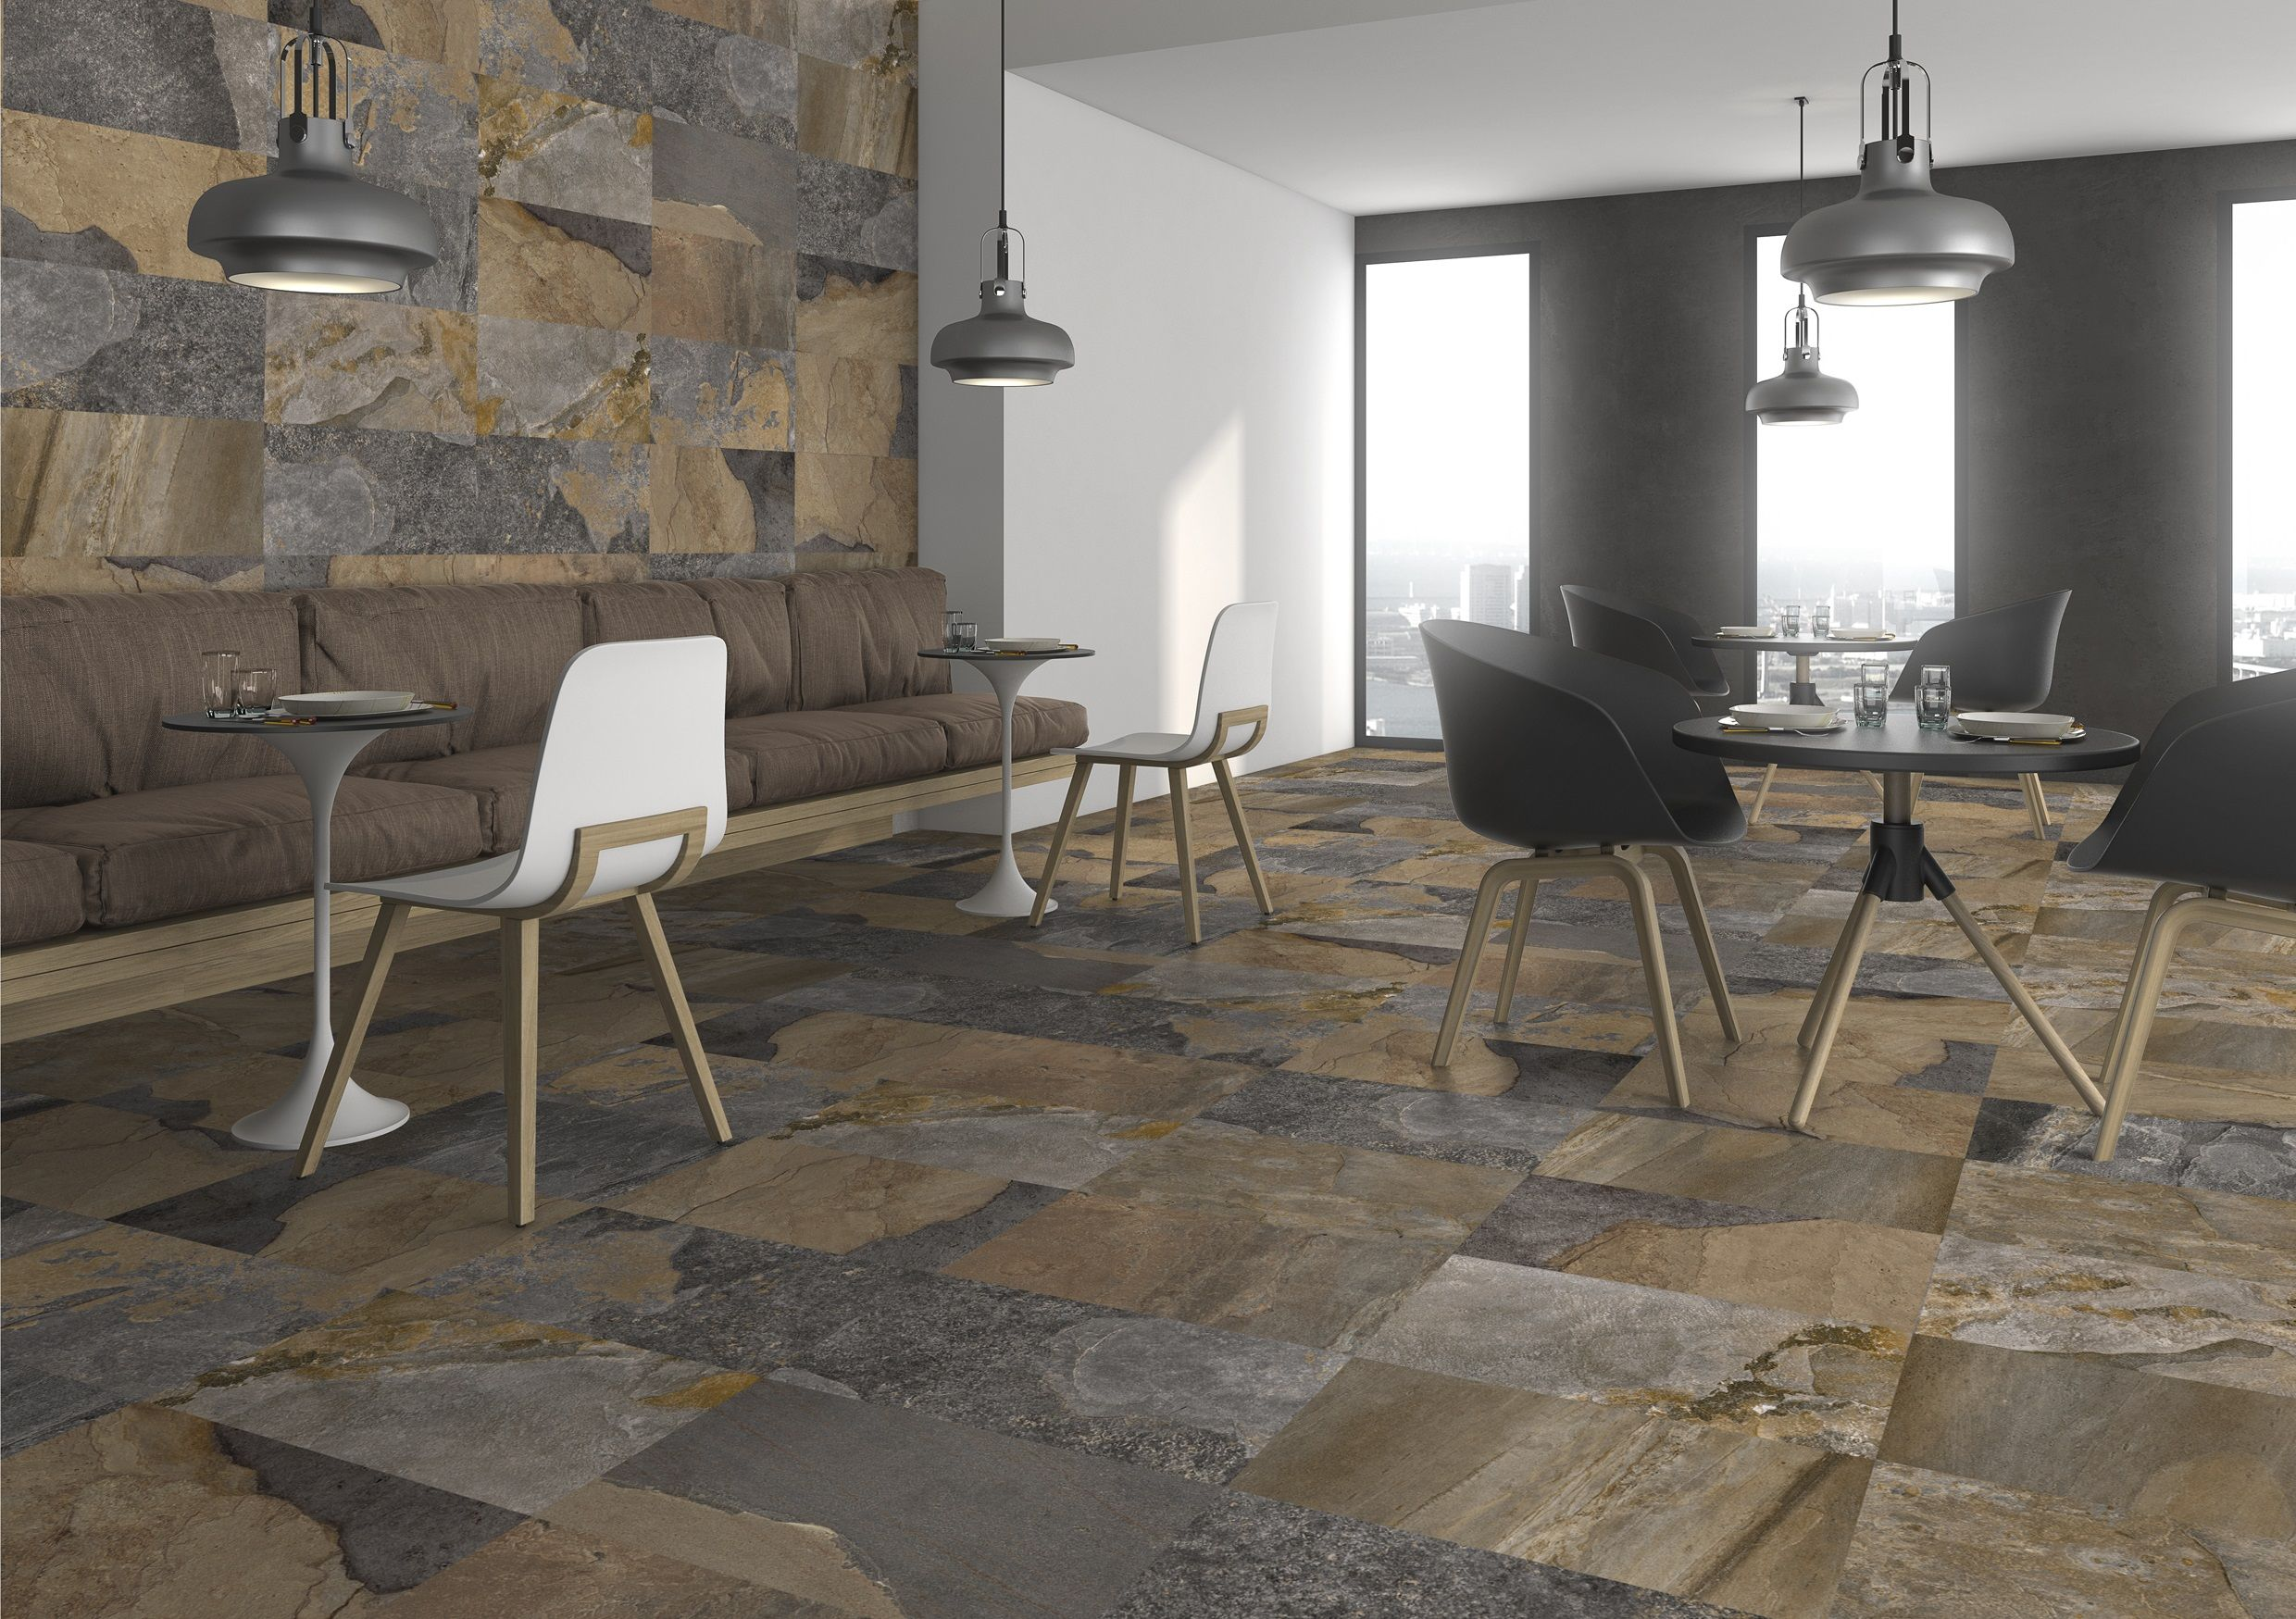 High Quality Wall And Floor Tiles That Replicate The Look Of Slate